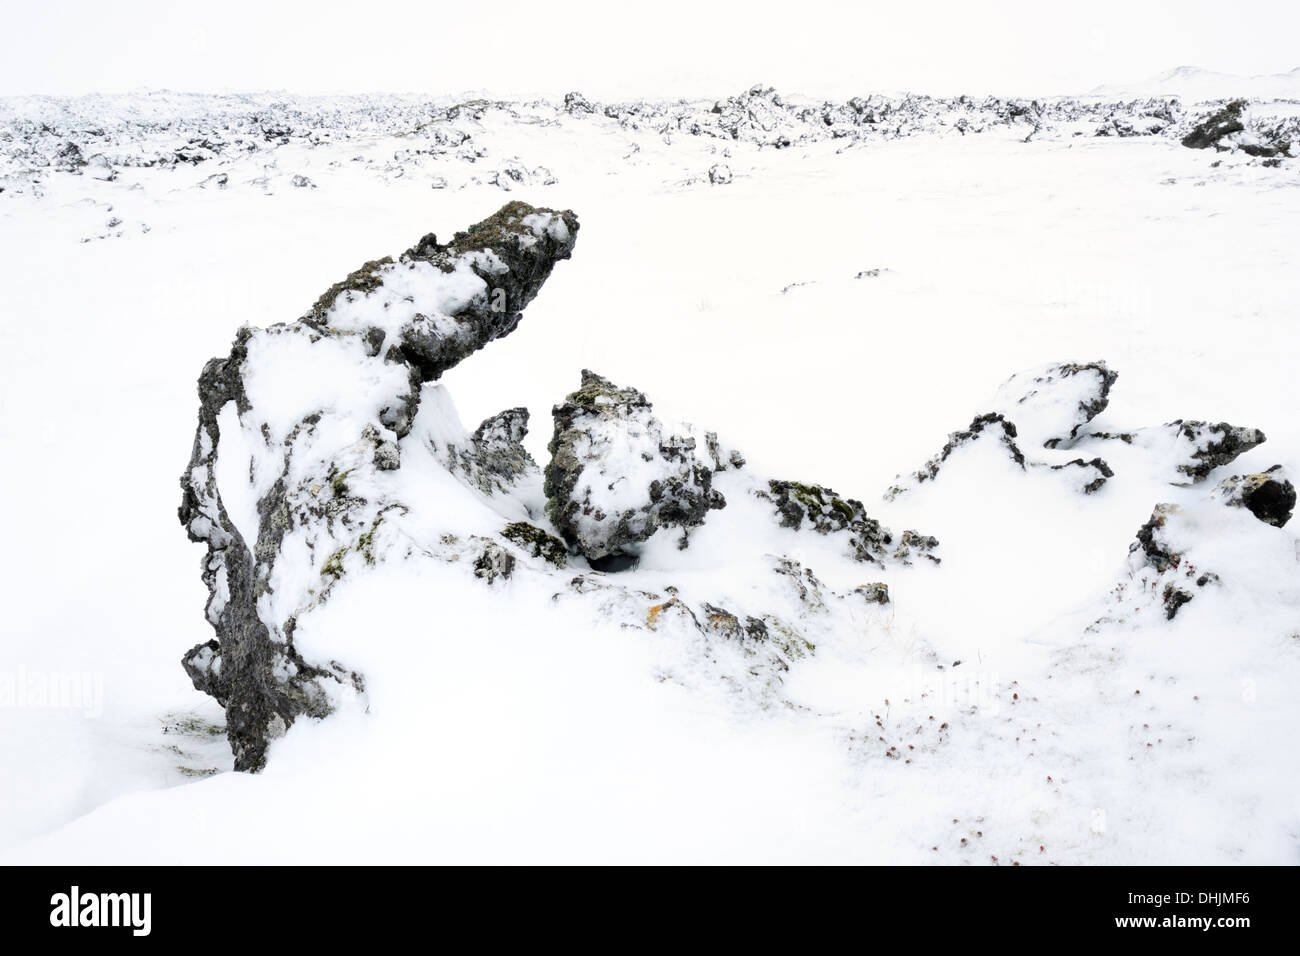 Volcanic landscape with lava field and snow covered. - Stock Image